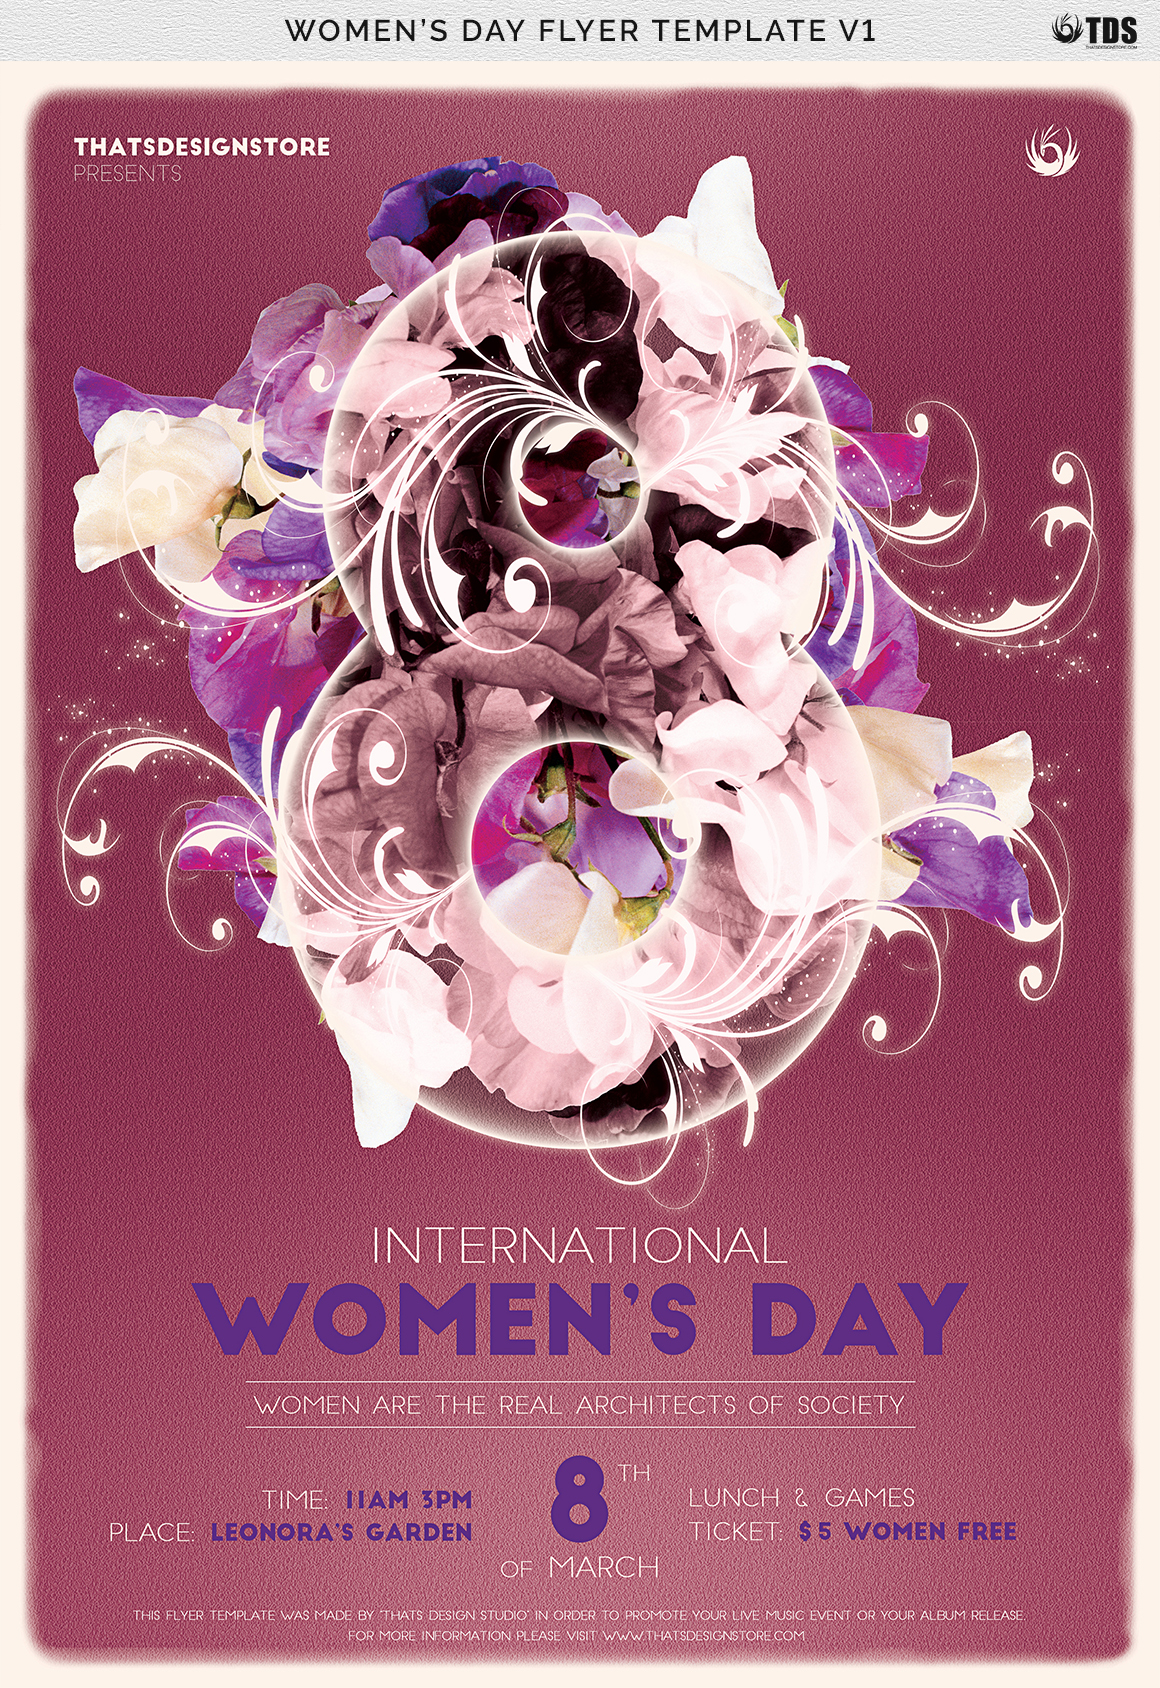 Womens Day Flyer Template V1 example image 7